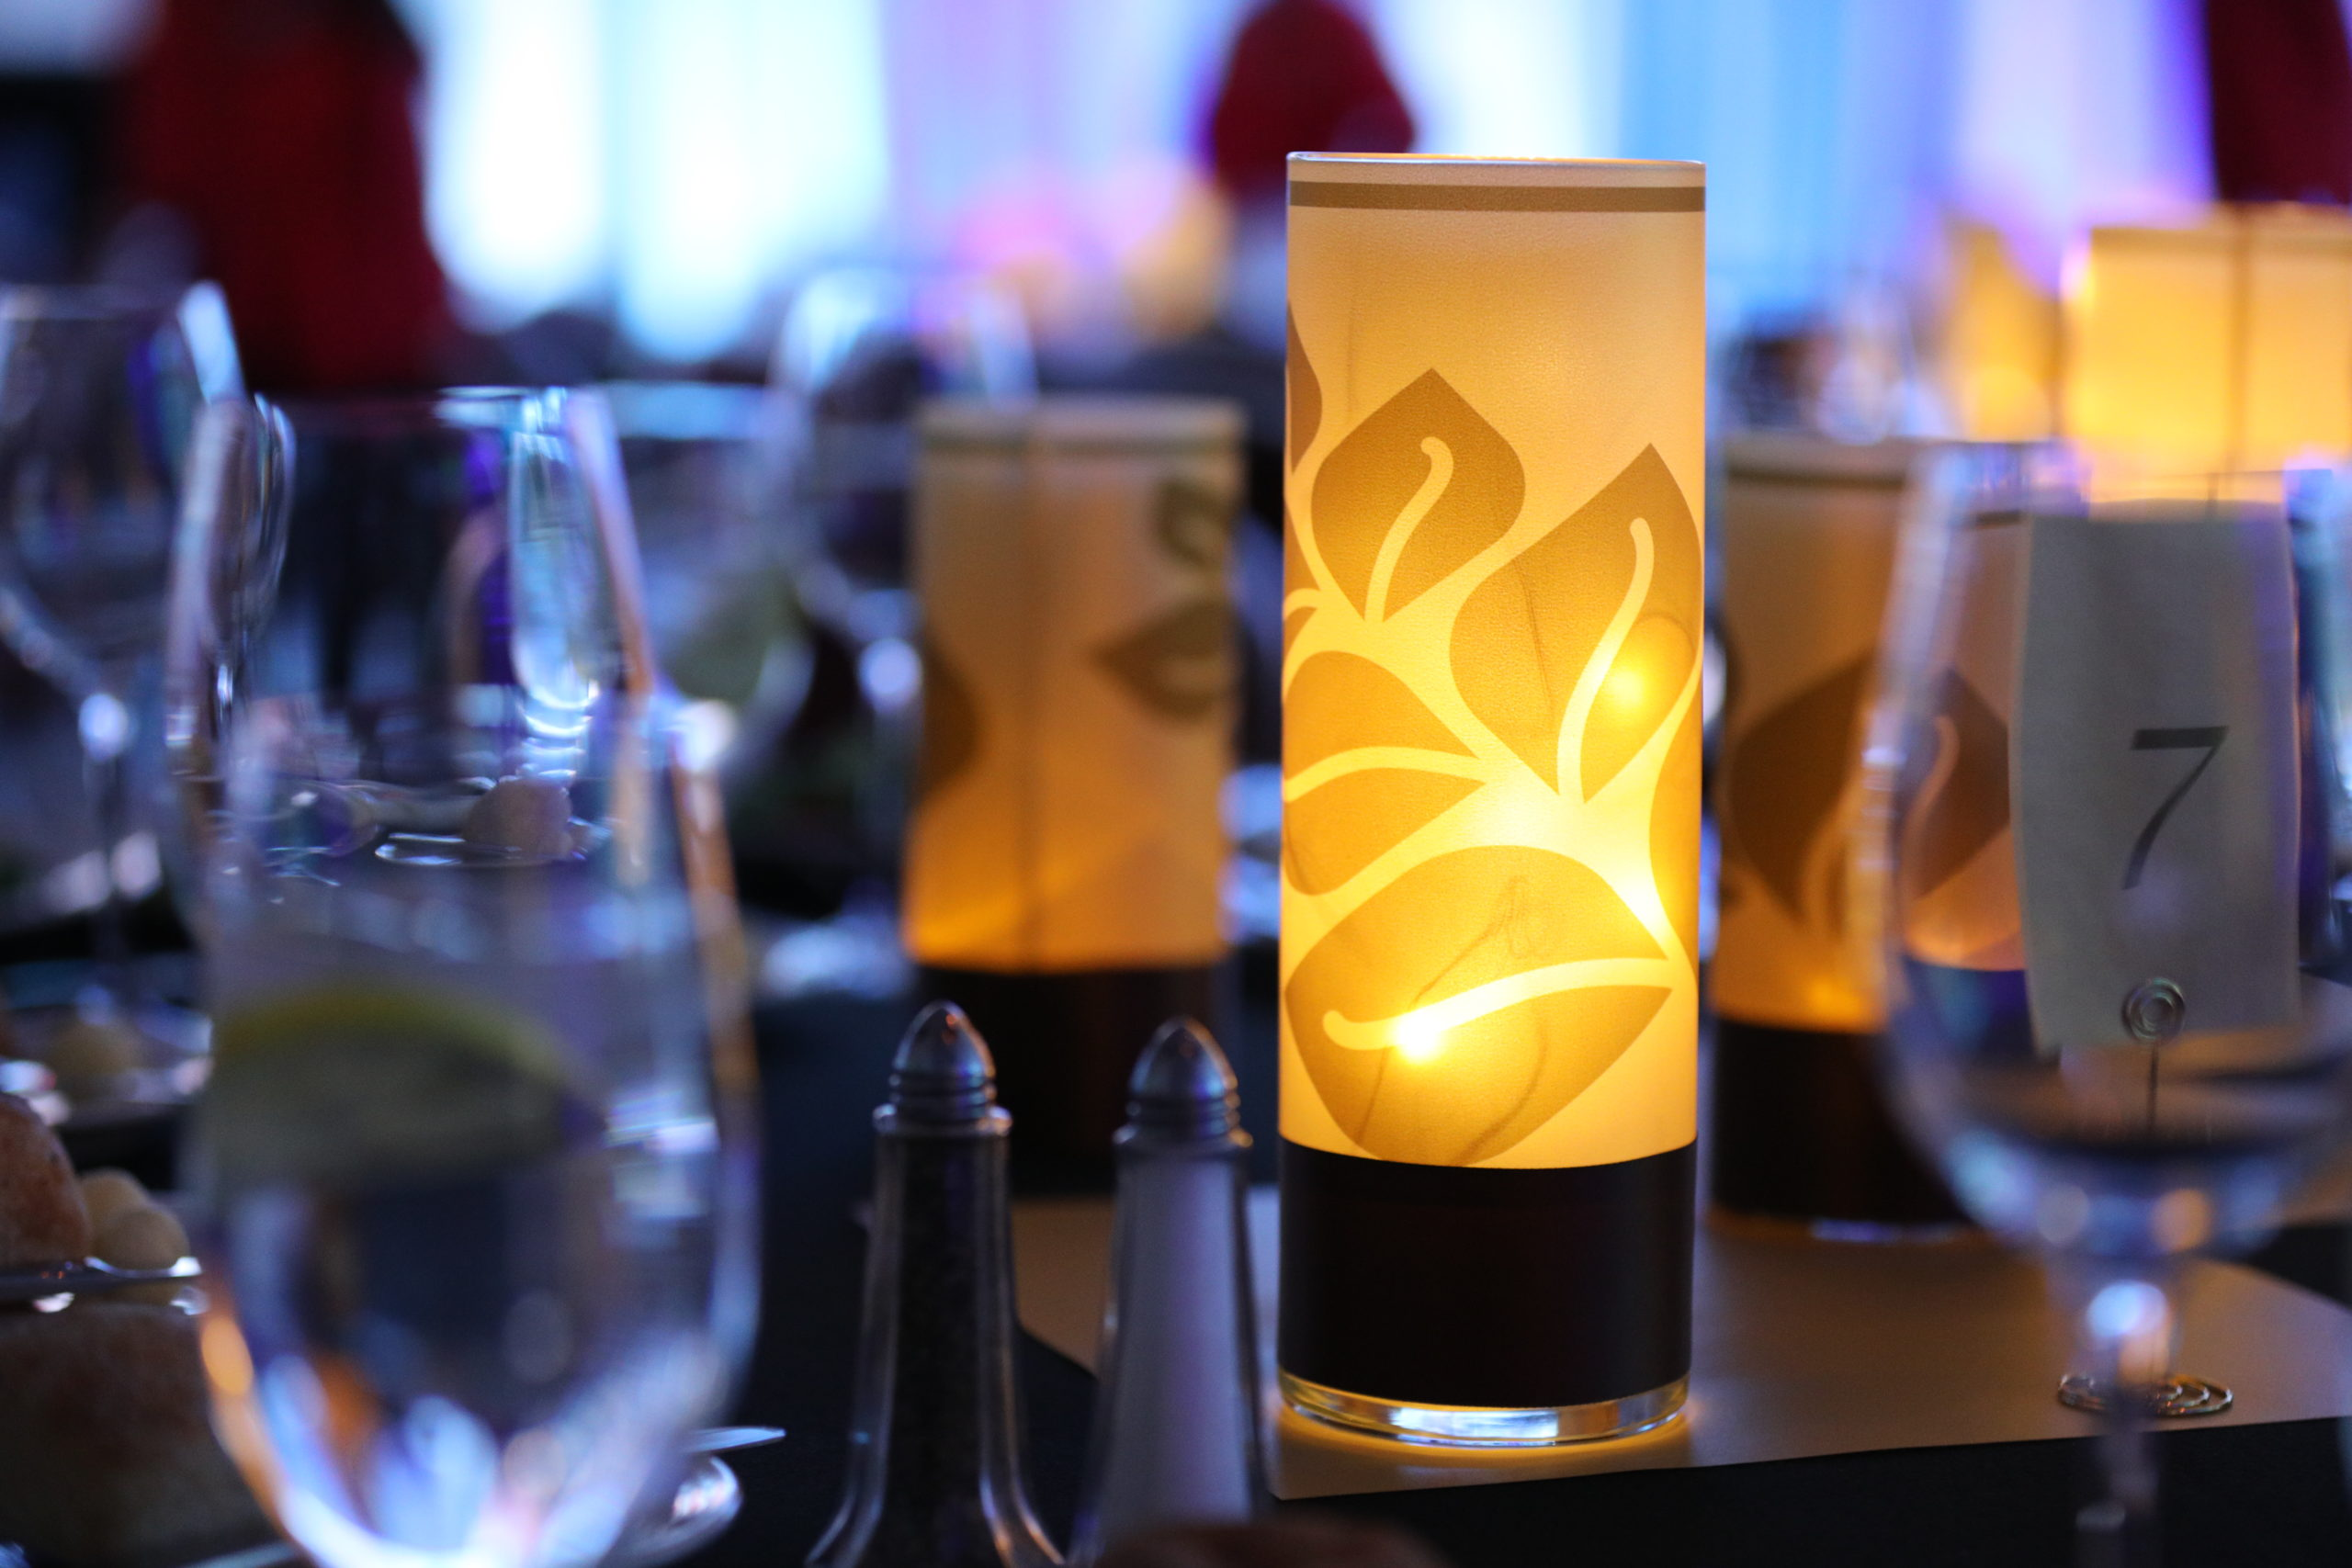 Table settings at New Hampshire's Starry Starry Night